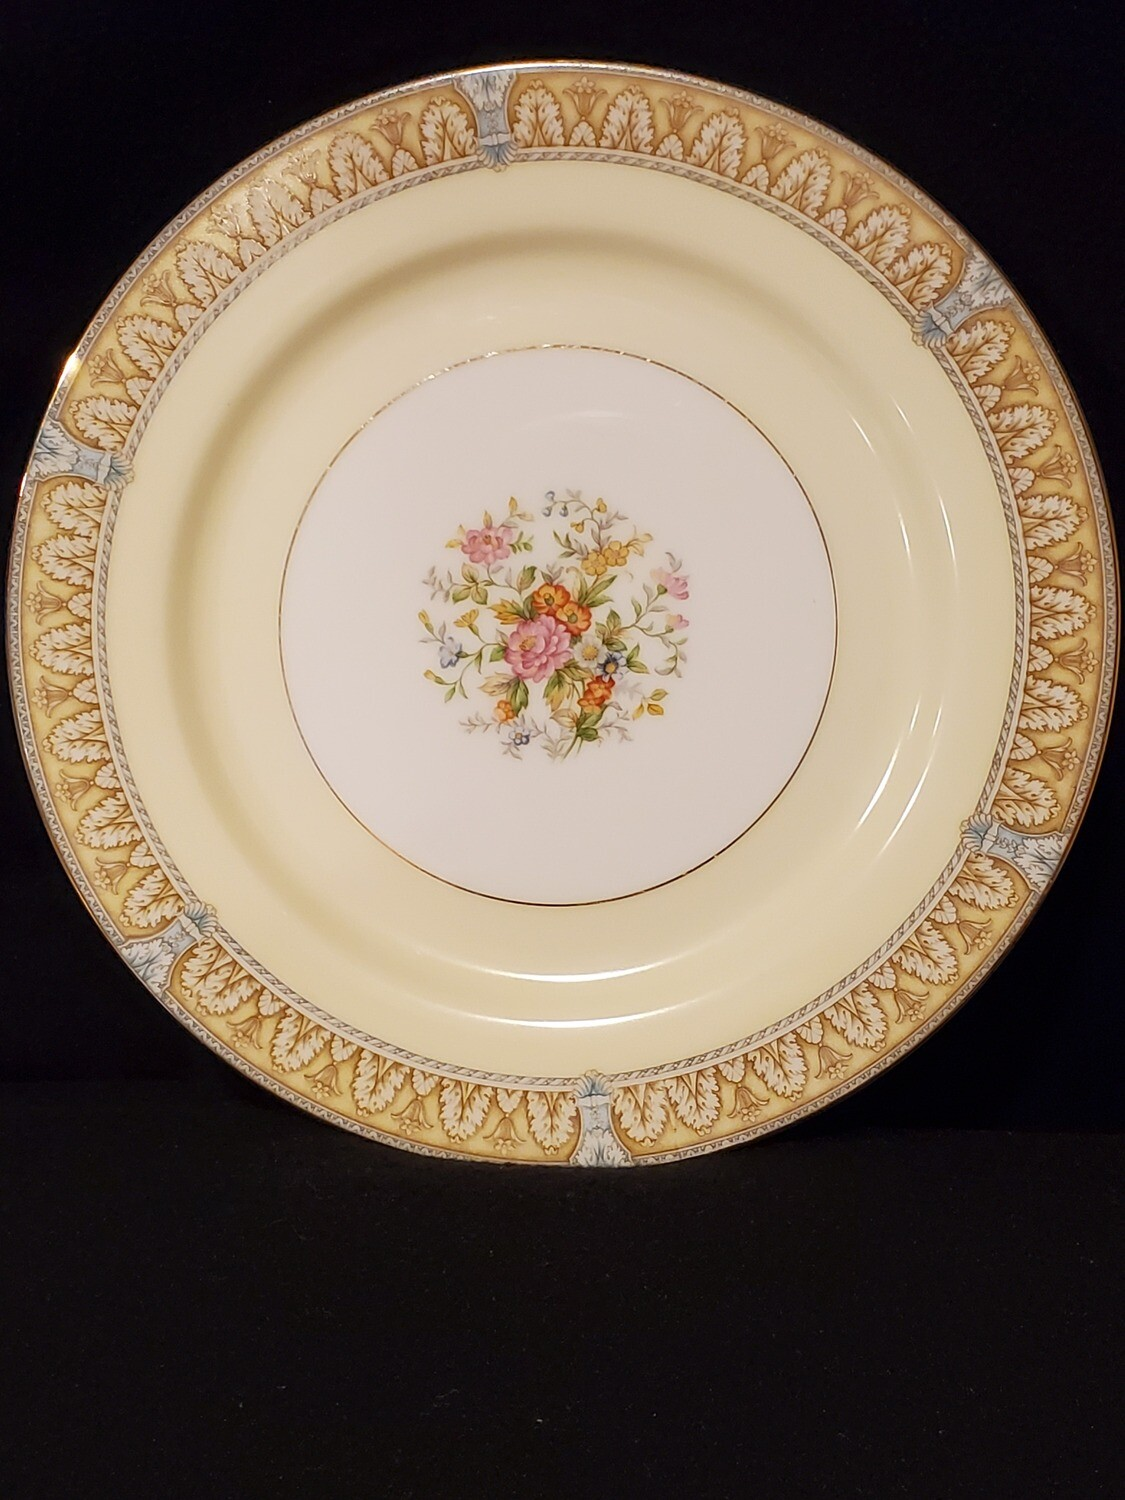 "Noritake, Dinner Plate 9 7/8"" W, Claire Pattern, Porcelain"